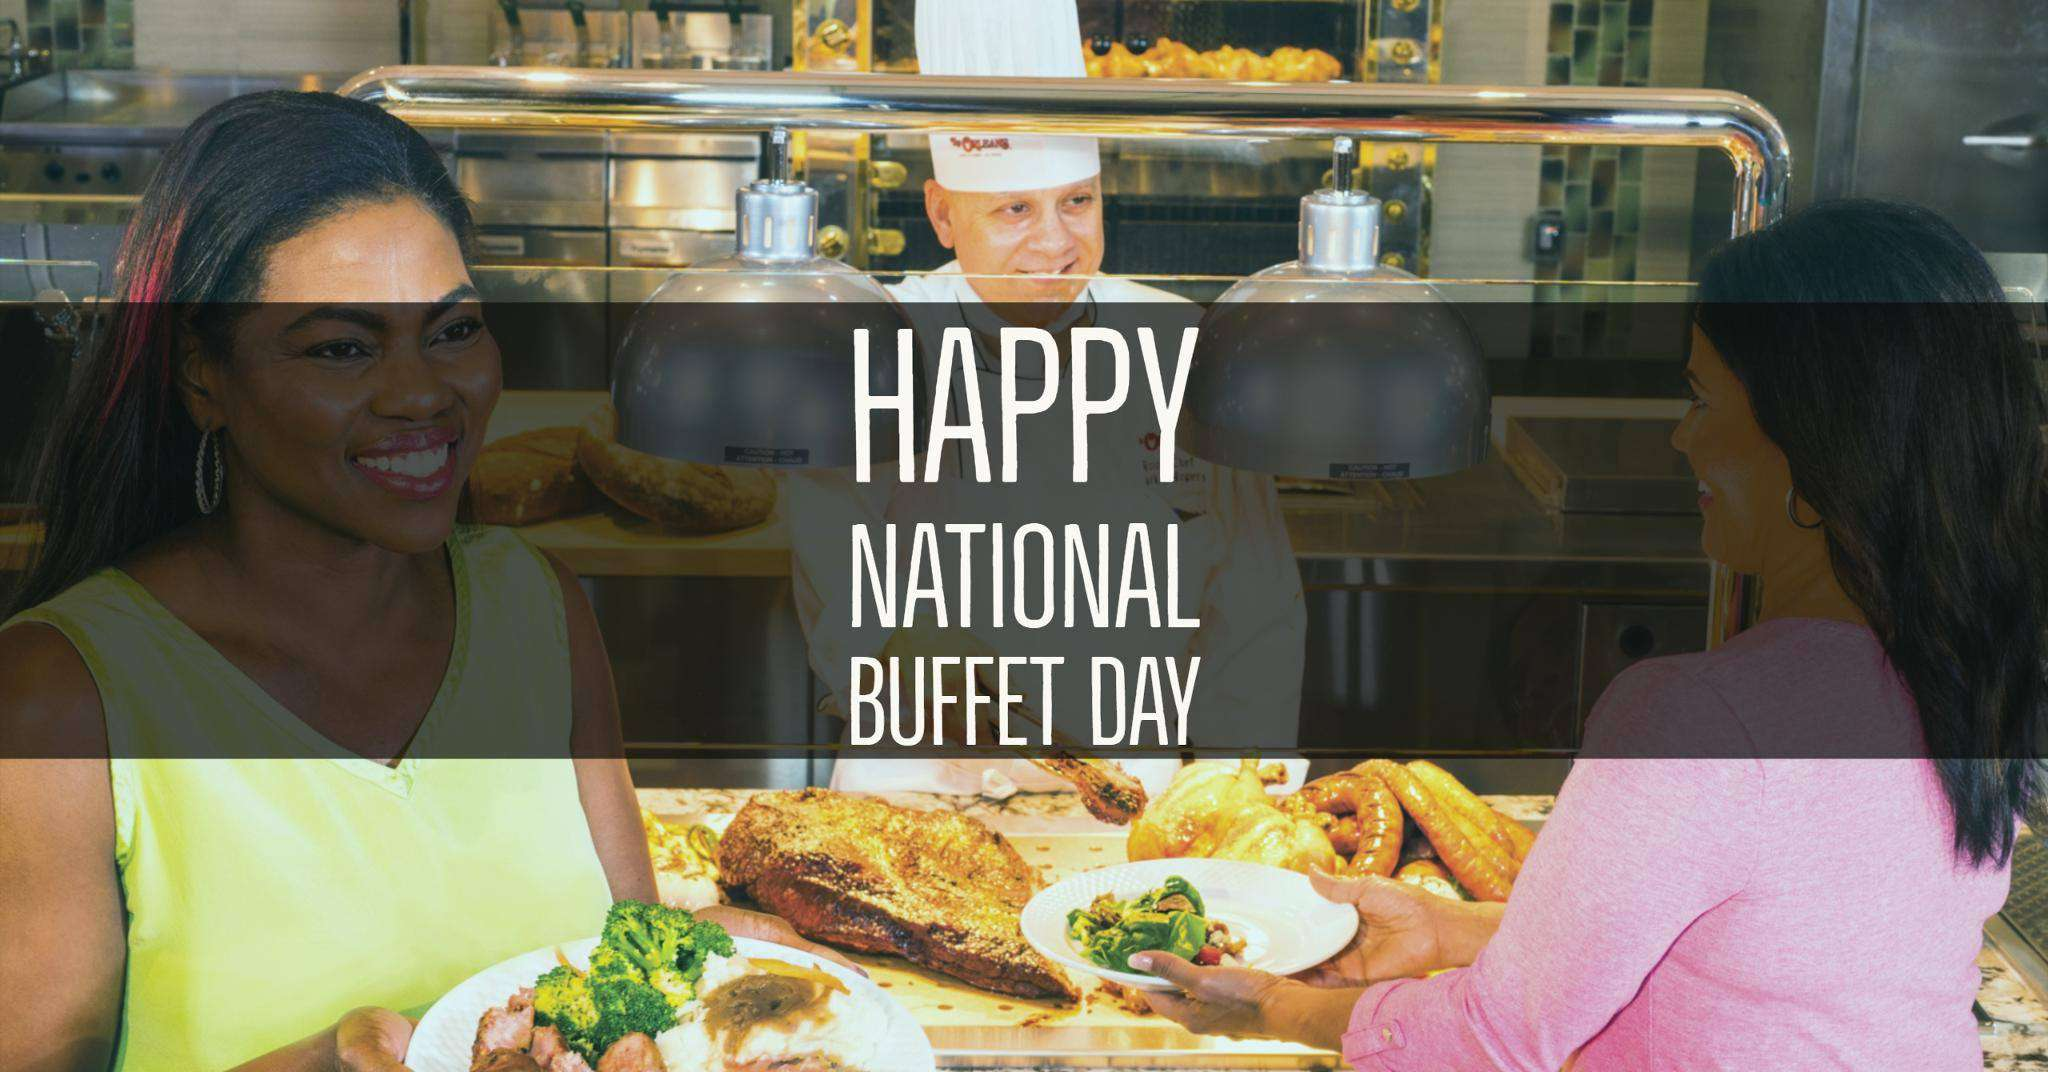 National Buffet Day Wishes For Facebook